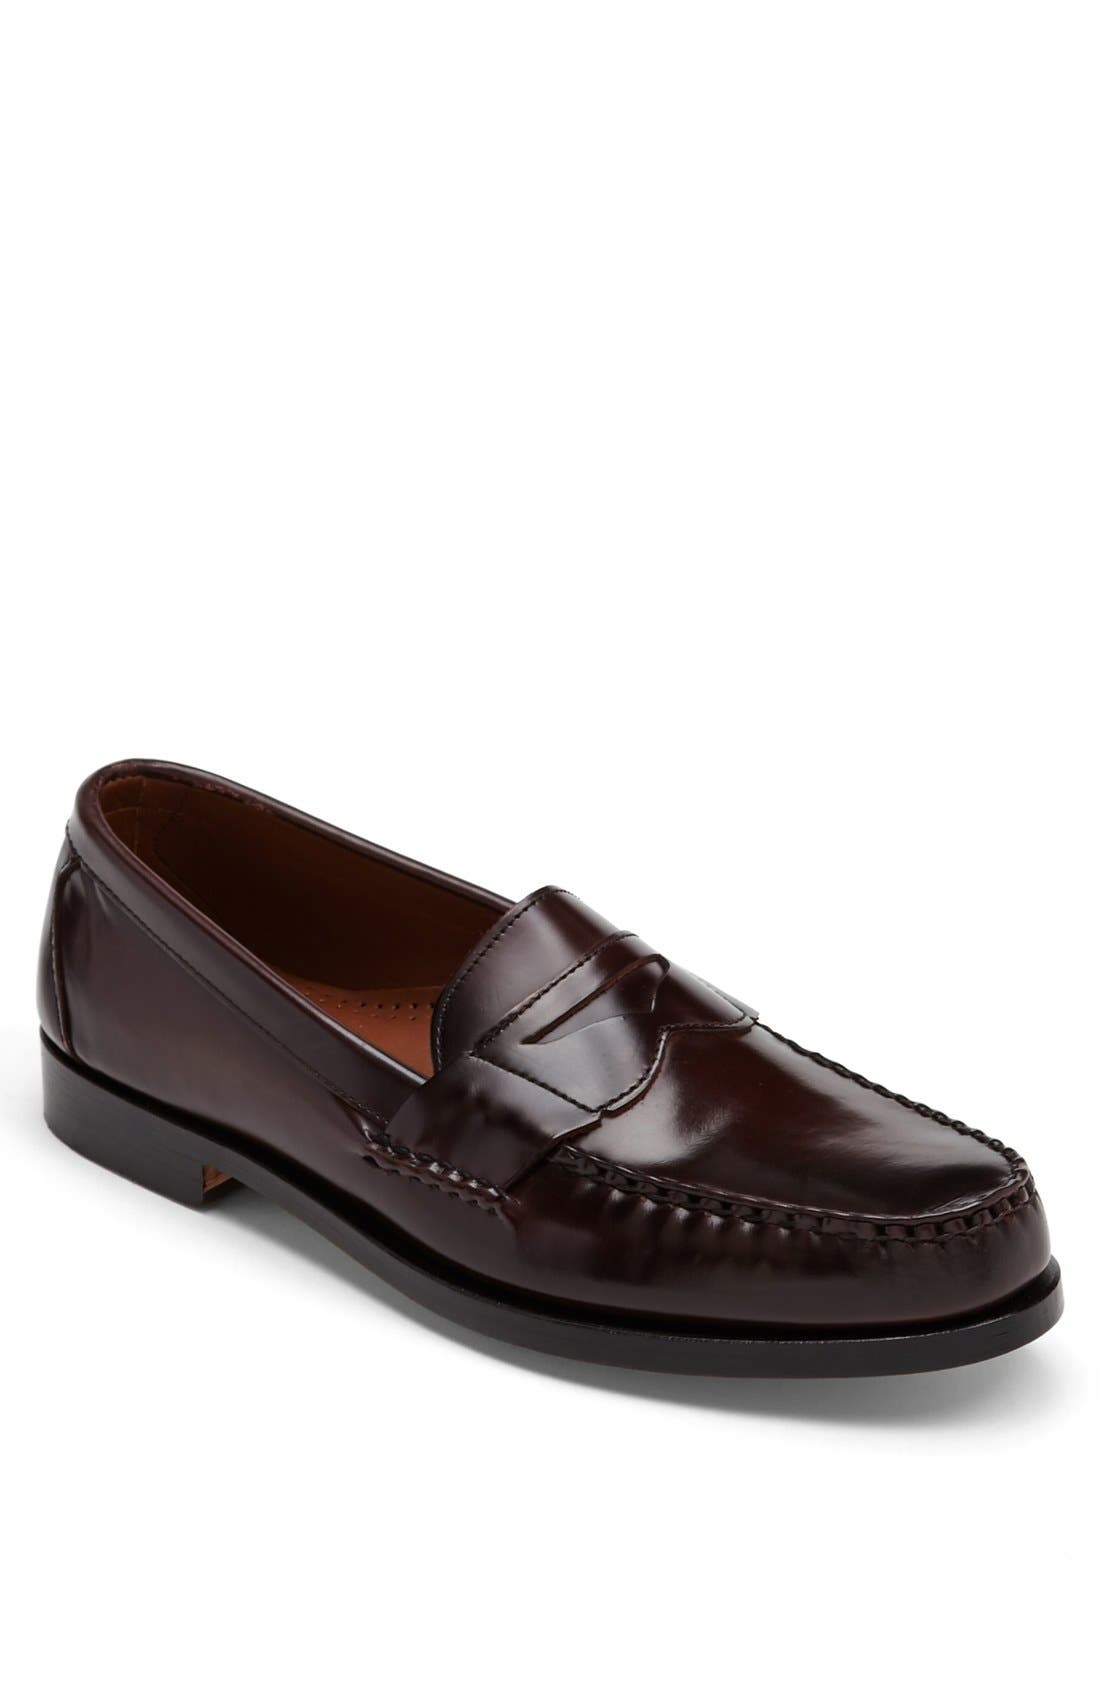 Alternate Image 1 Selected - Allen Edmonds 'Walden' Loafer (Men)